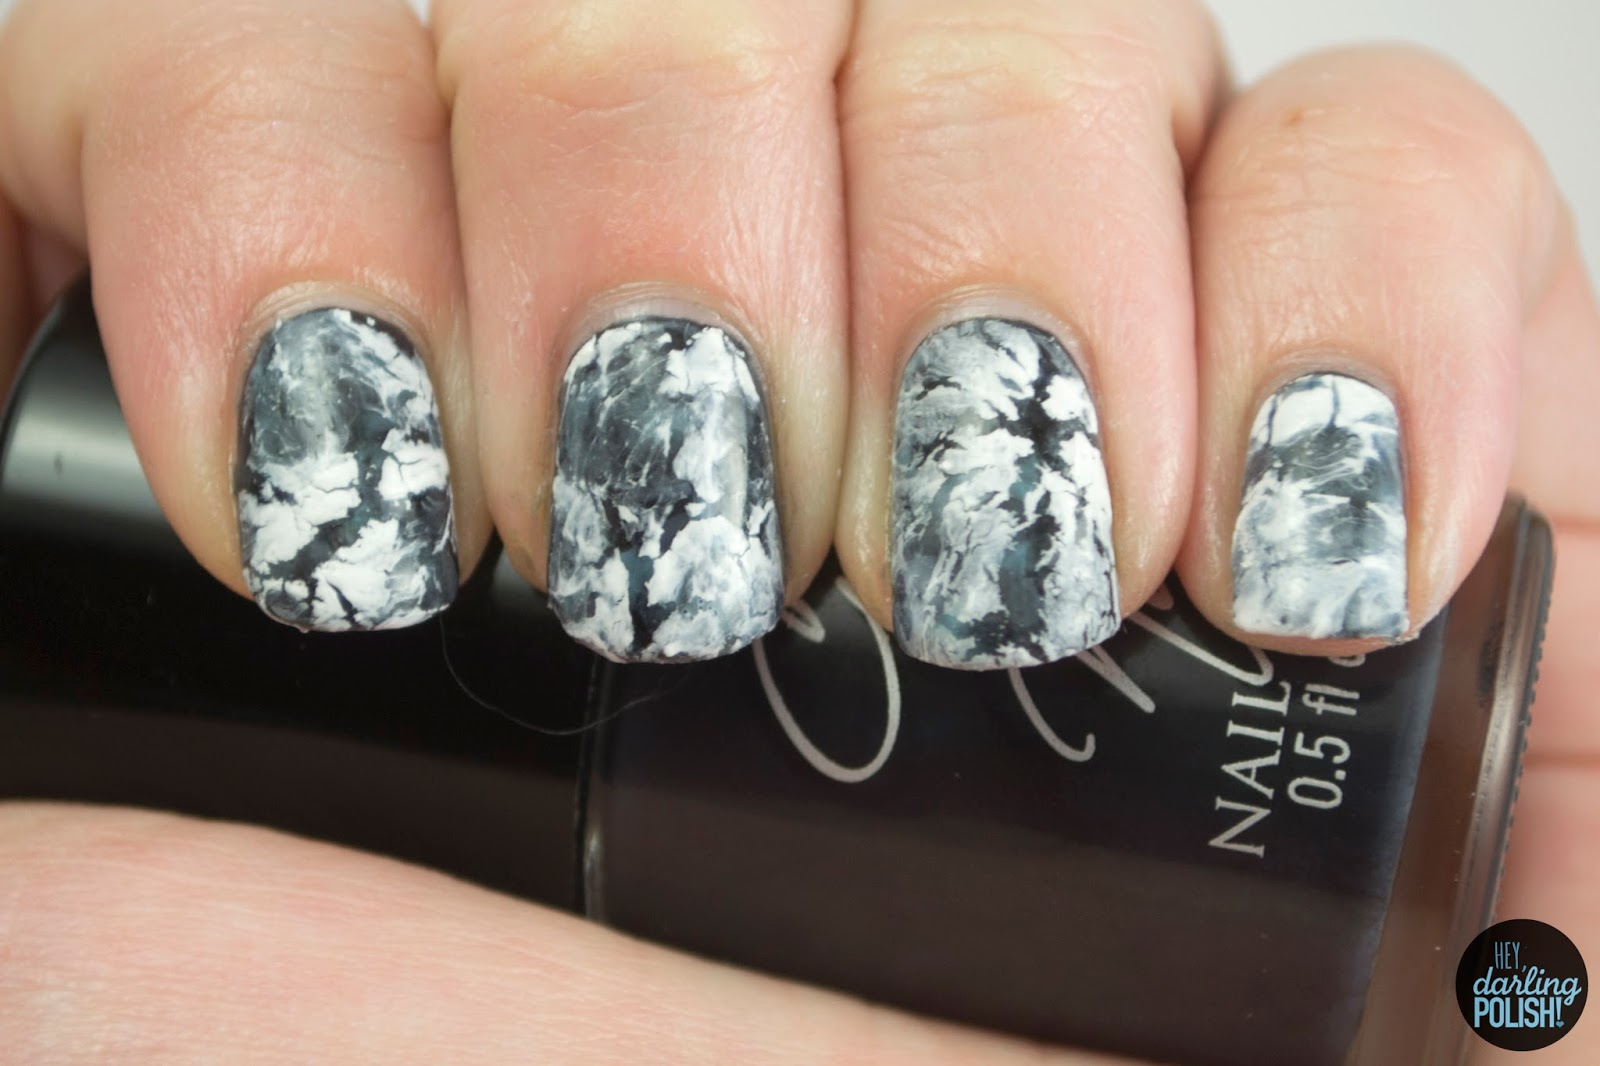 nails, nail art, nail polish, polish, white, black, hey darling polish, crackle, water spotted